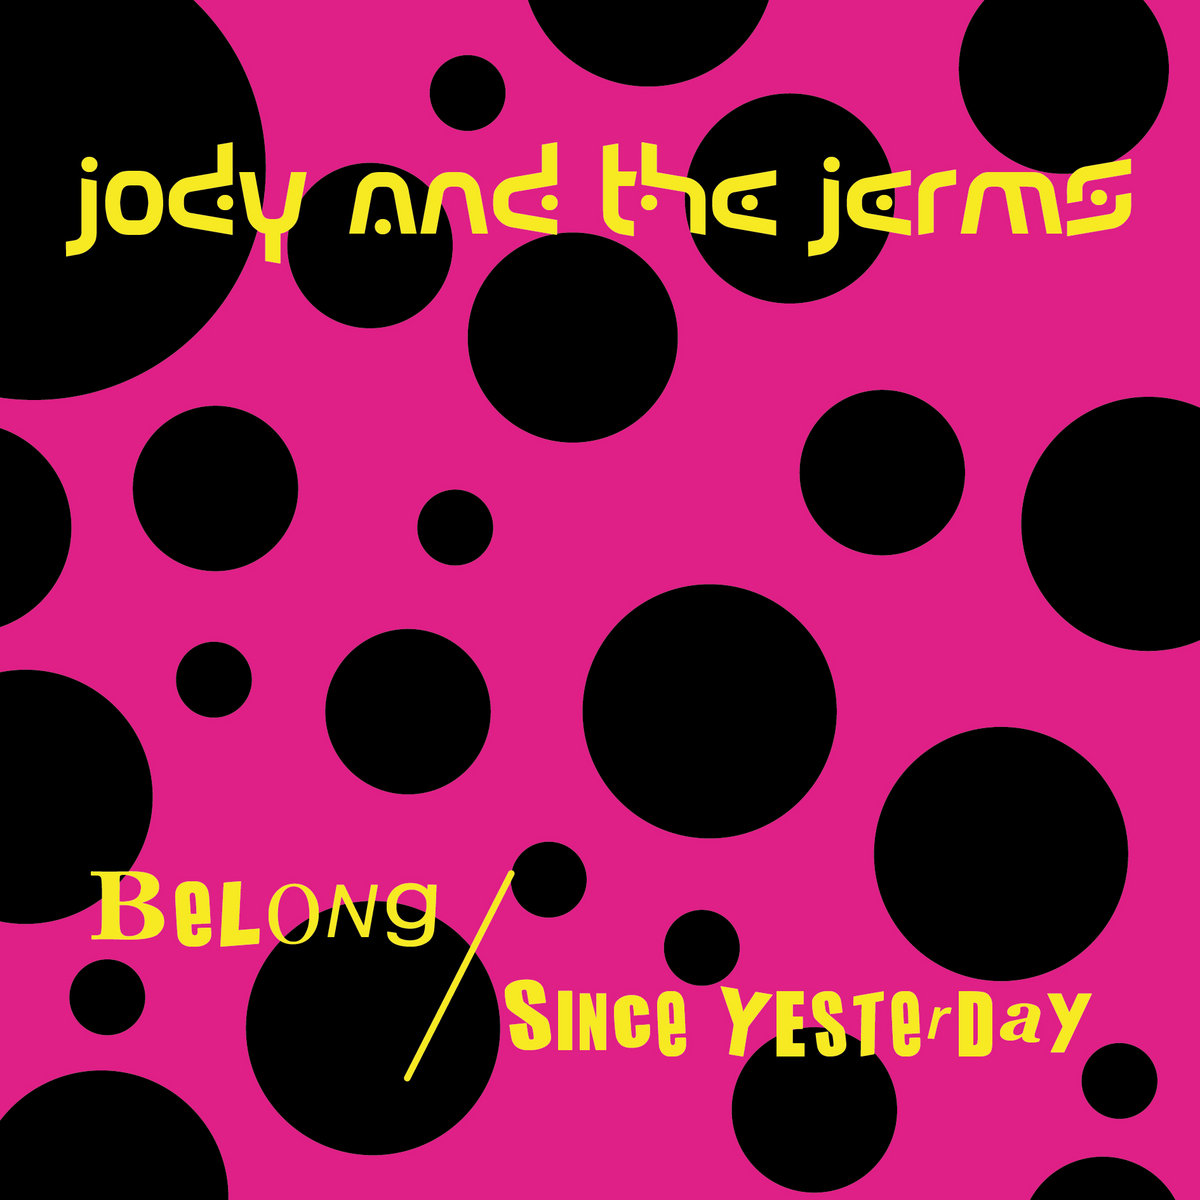 Since Yesterday by Jody and the Jerms